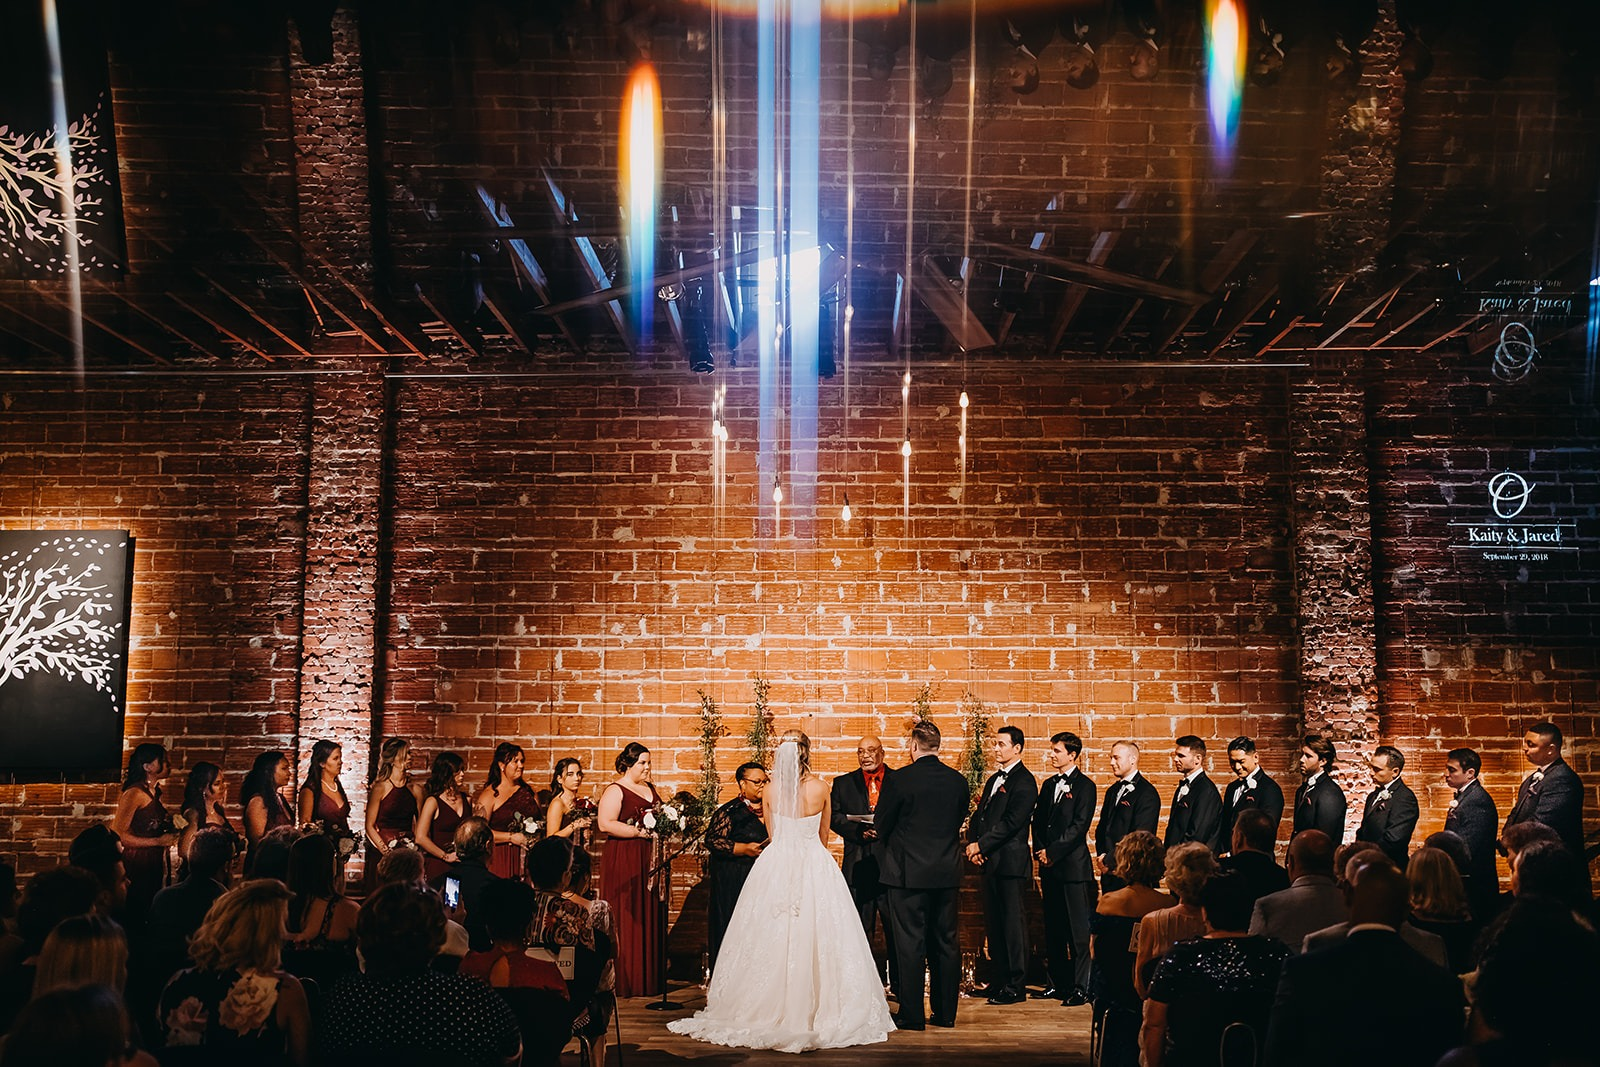 Urban Downtown St Pete Wedding with exposed red brick wall ceremony backdrop and string lights | Tampa Bay Unique Wedding Venue NOVA 535